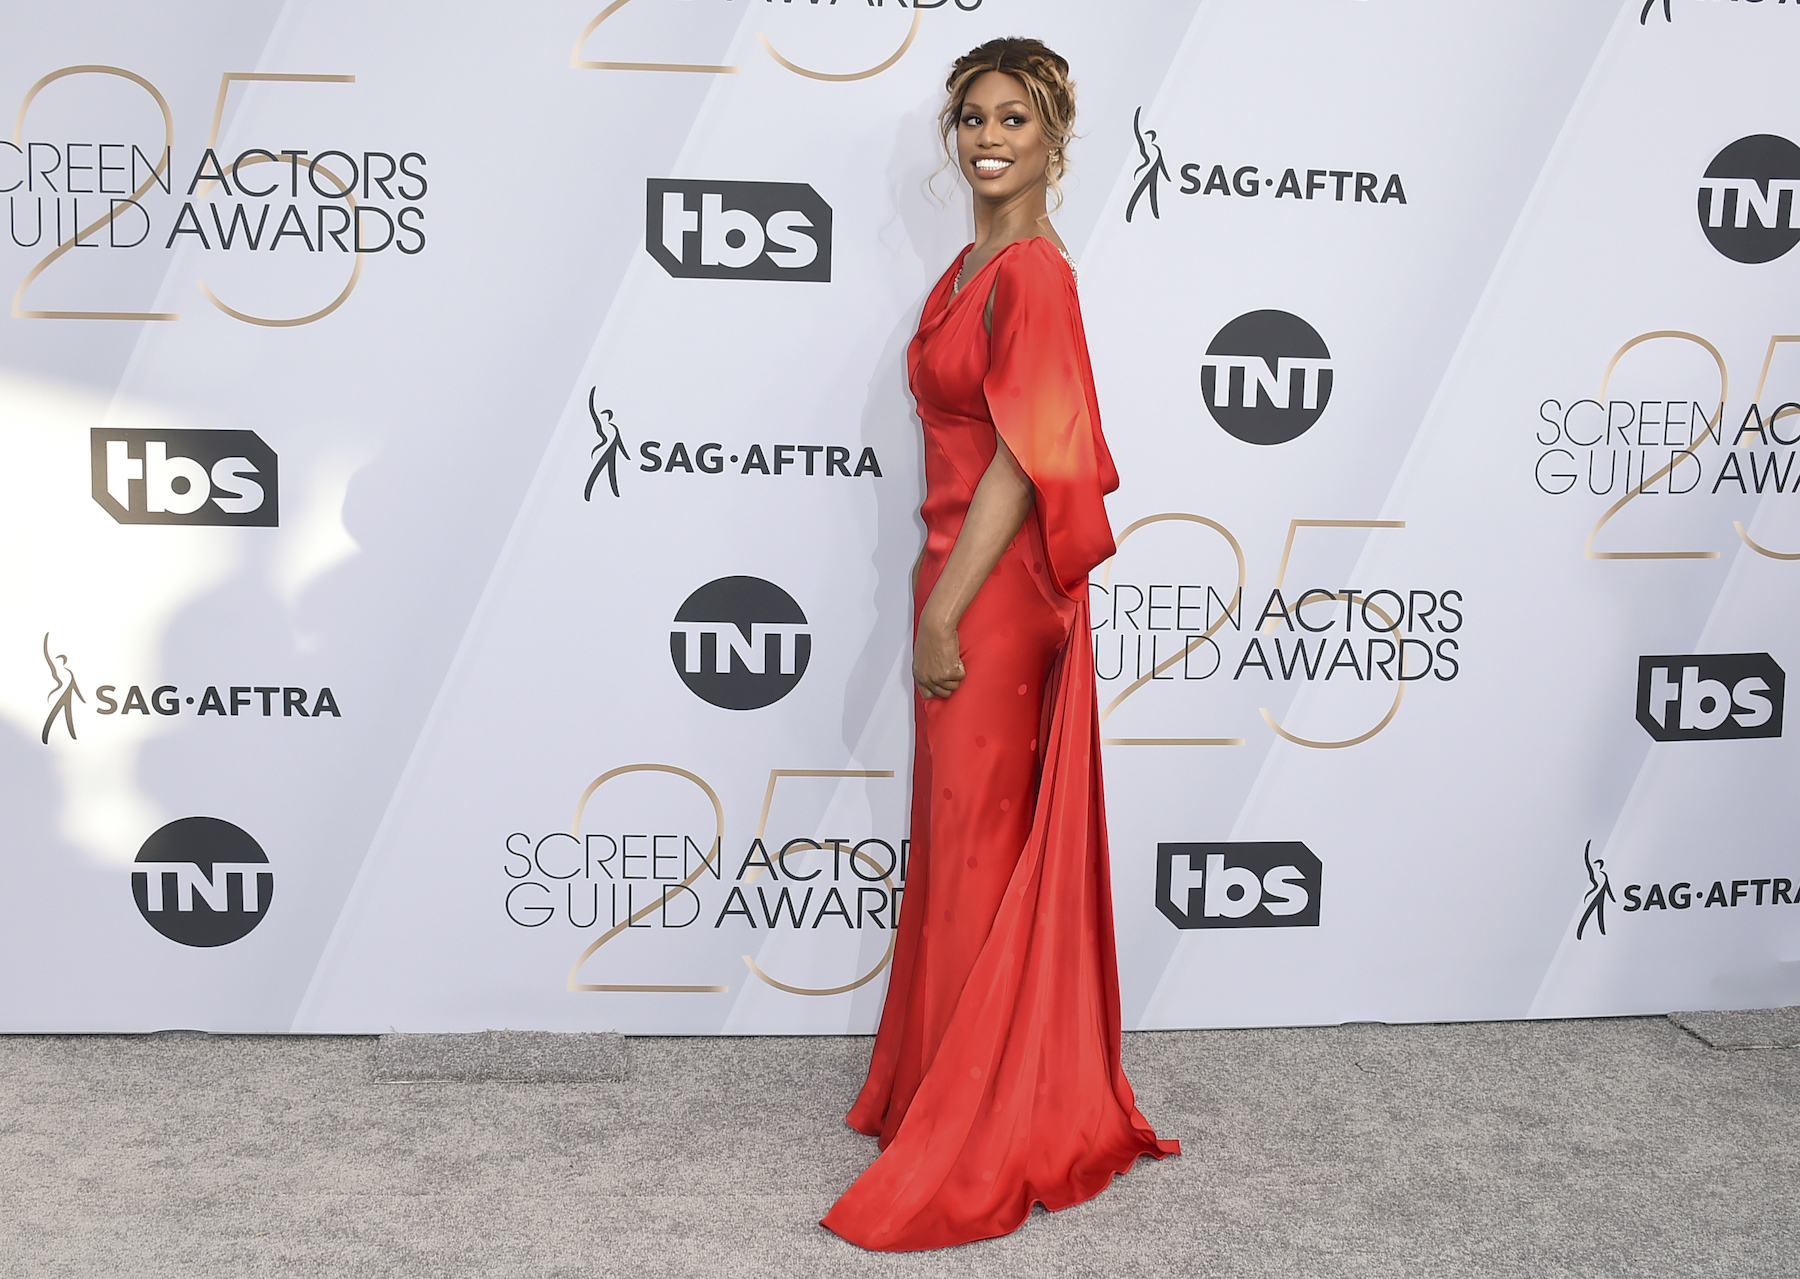 "<div class=""meta image-caption""><div class=""origin-logo origin-image ap""><span>AP</span></div><span class=""caption-text"">Laverne Cox arrives at the 25th annual Screen Actors Guild Awards at the Shrine Auditorium & Expo Hall on Sunday, Jan. 27, 2019, in Los Angeles. (Jordan Strauss/Invision/AP)</span></div>"